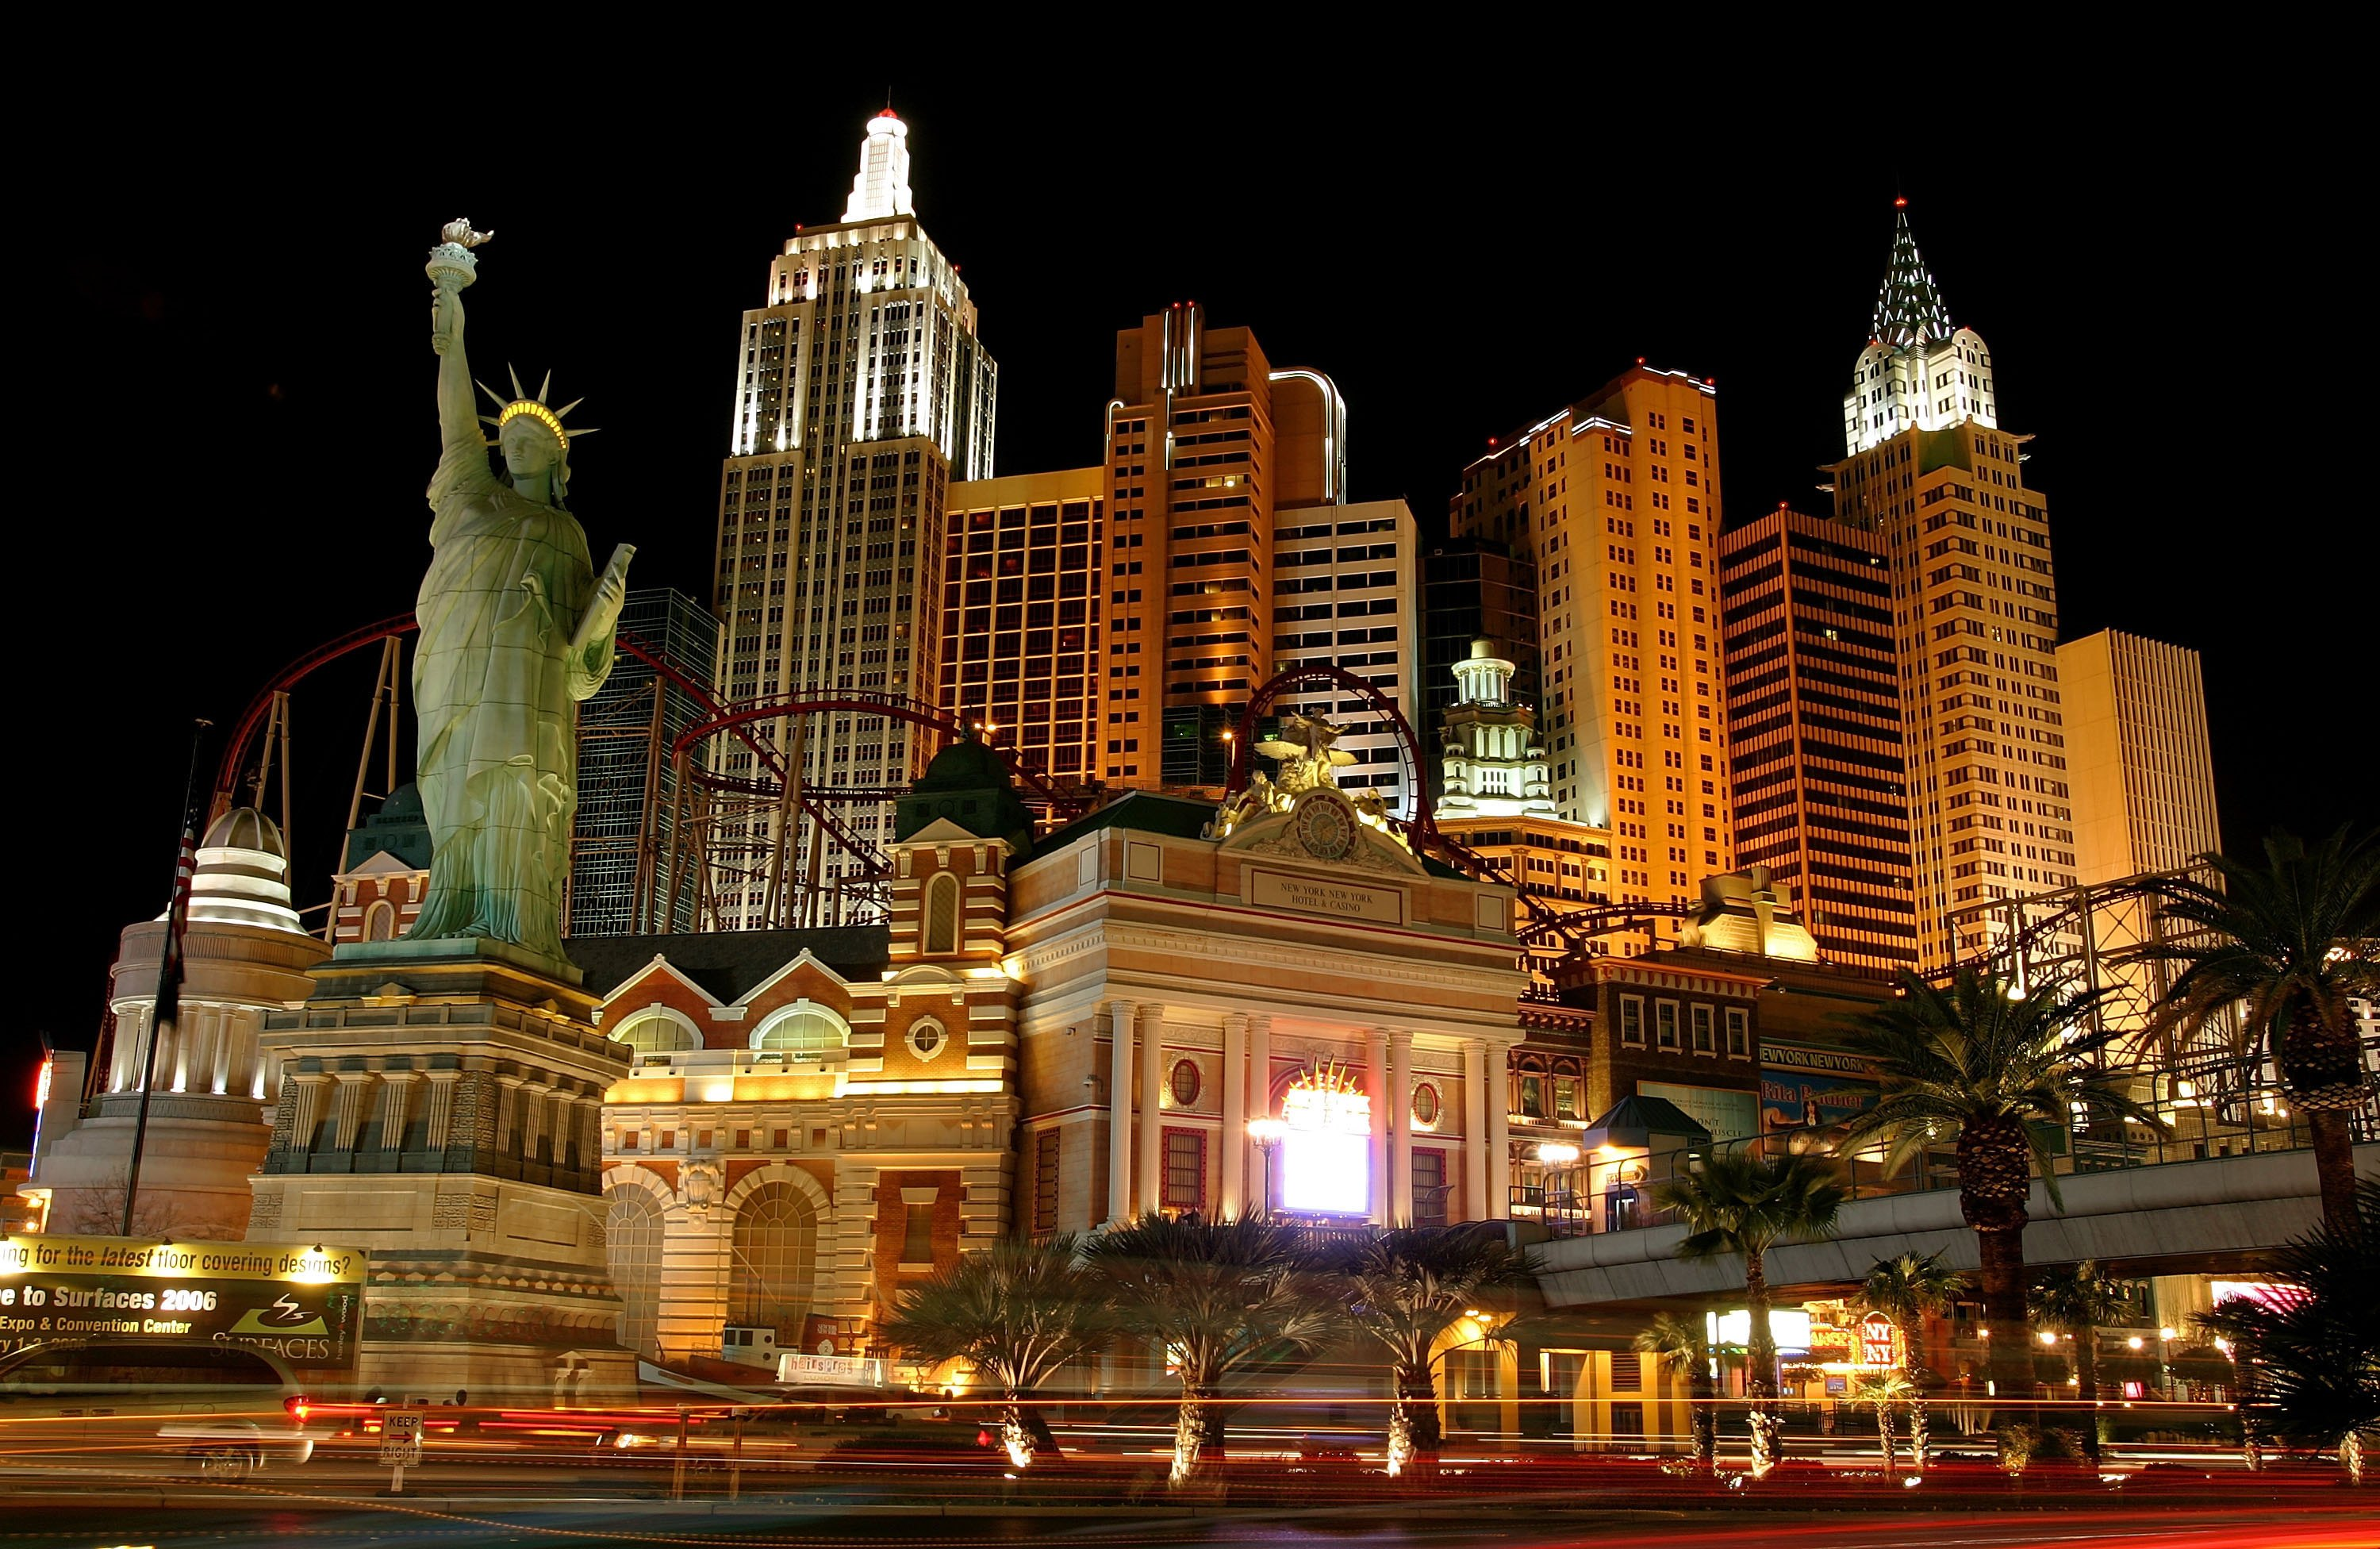 LAS VEGAS - FEBRUARY 01: Exterior photo of the New York-New York Hotel & Casino February 1, 2006 in Las Vegas, Nevada. (Photo by Ethan Miller/Getty Images)